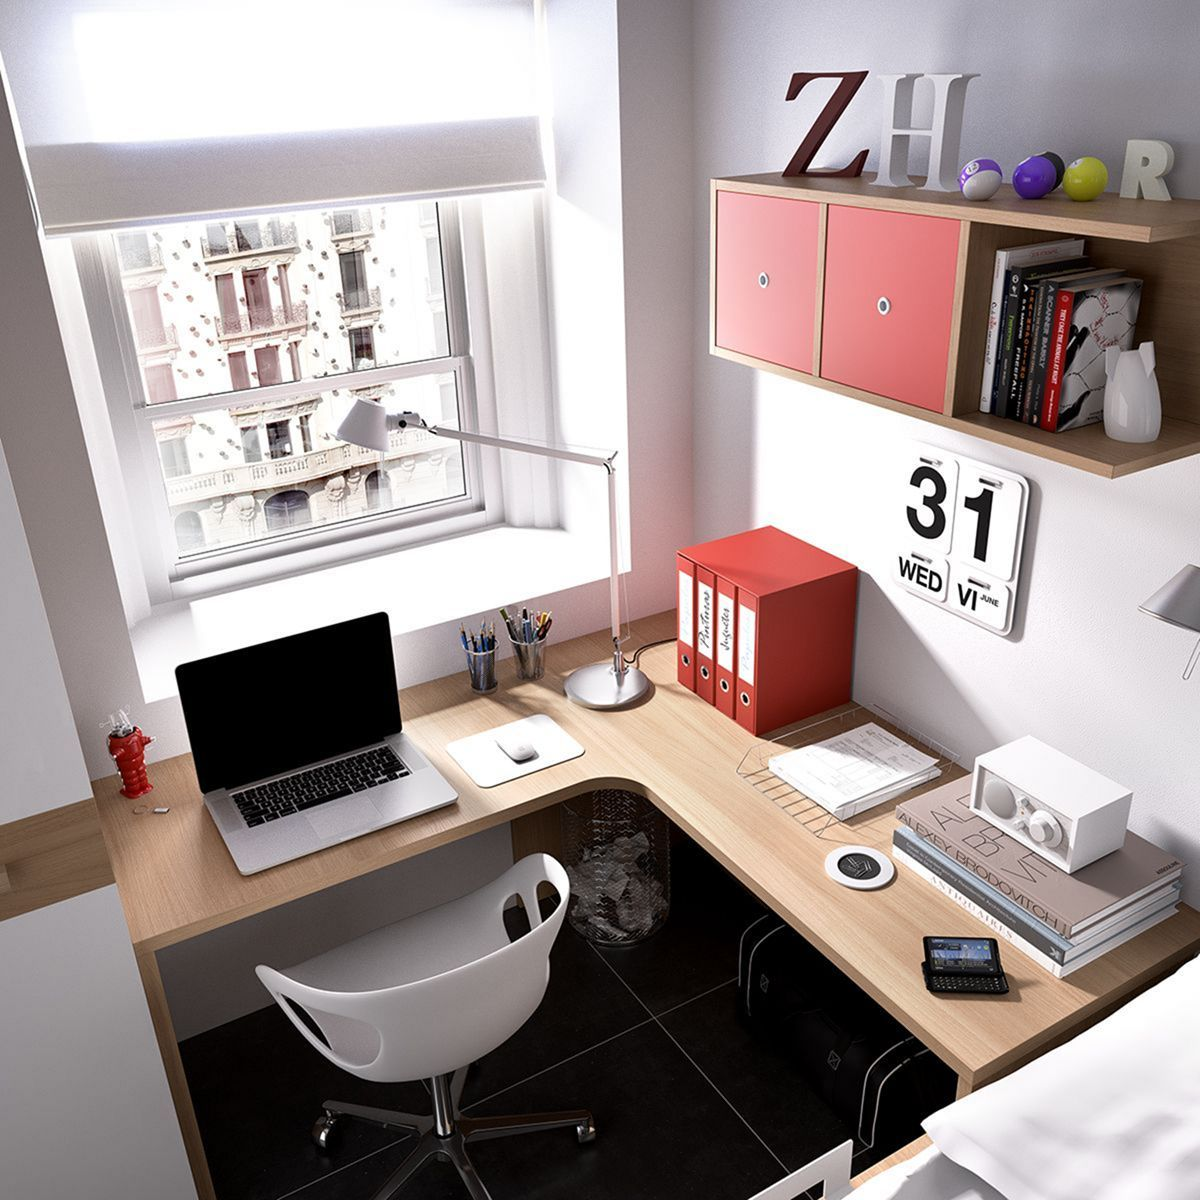 20 Home Office Designs For Small Spaces: 30 Beautiful Home Office Design Ideas For Small Spaces